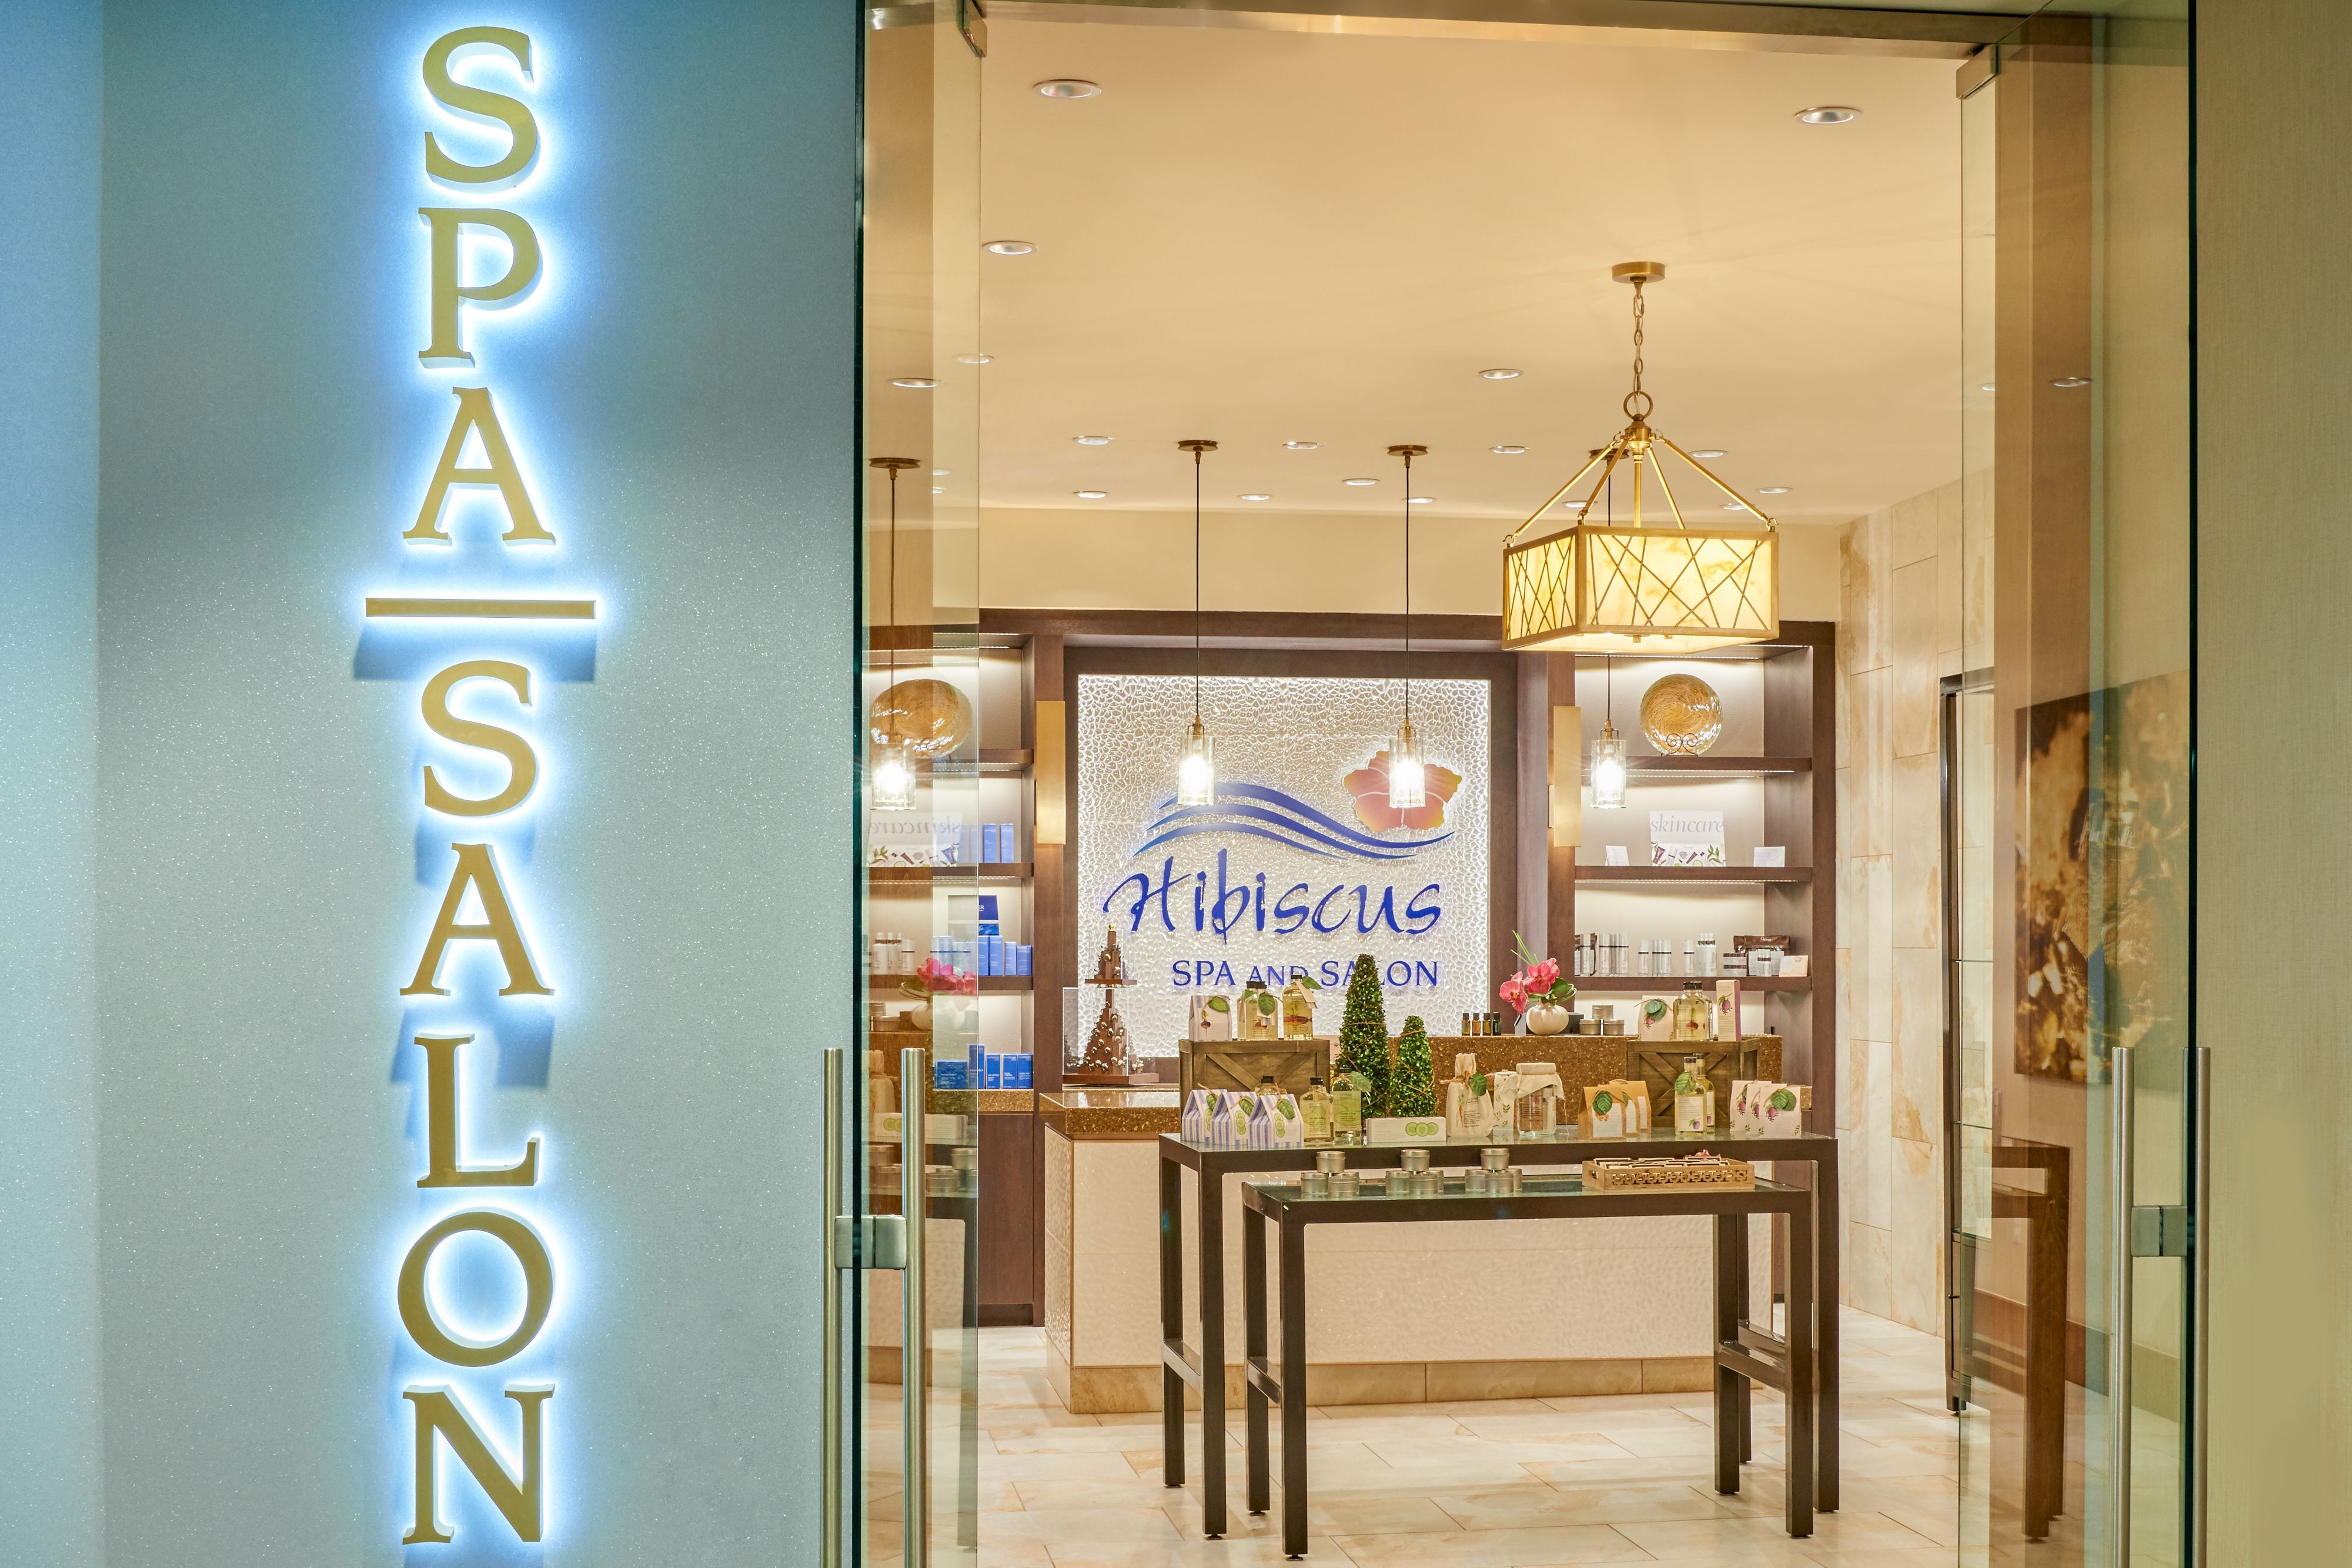 The Hibiscus Spa Salon